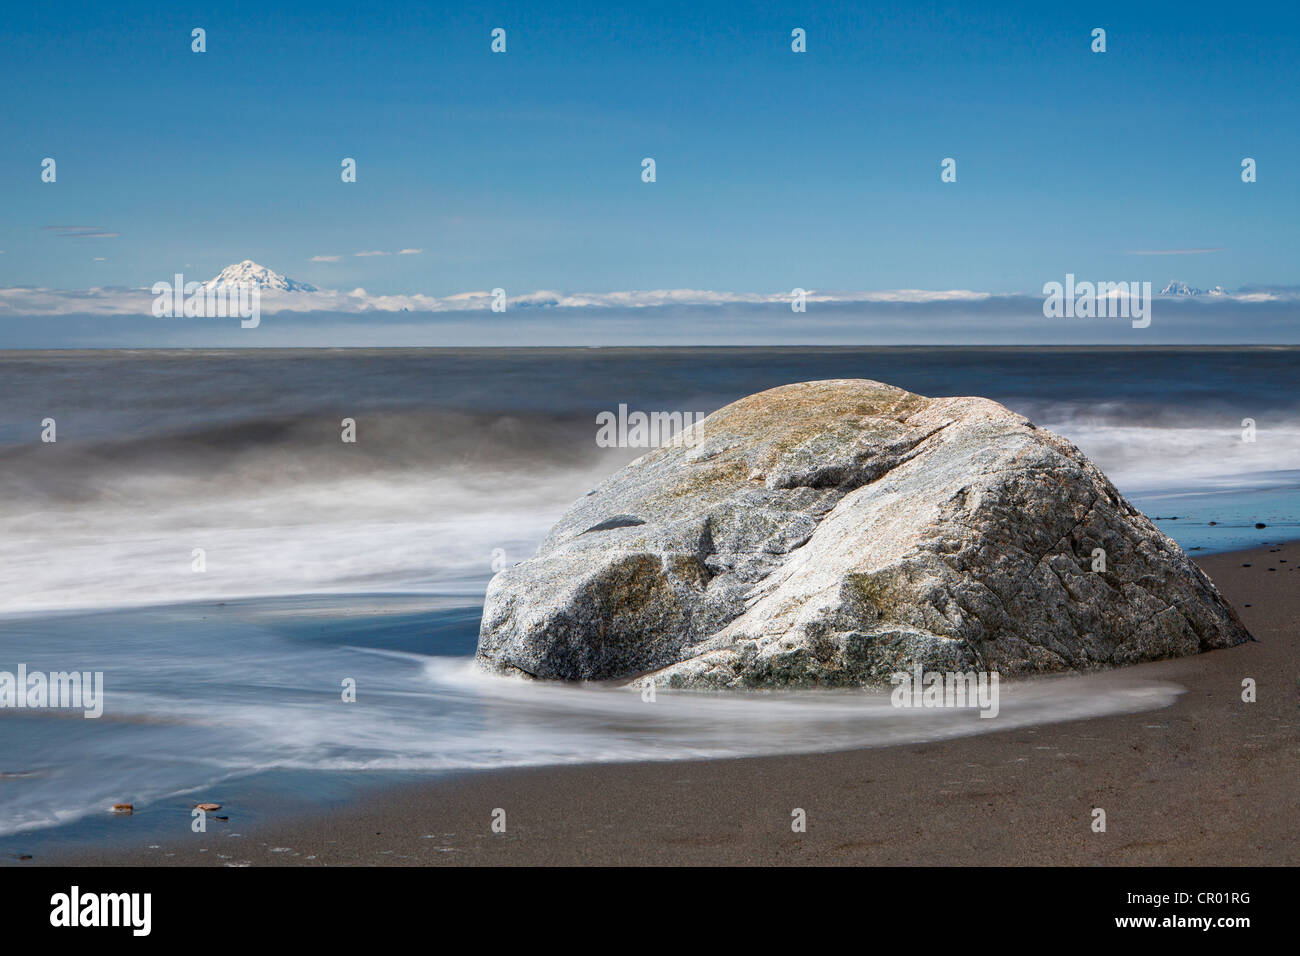 Surf on the beach of Kenai on the Kenai Peninsula with Mount Redoubt volcano, Cook Inlet, Alaska, USA - Stock Image